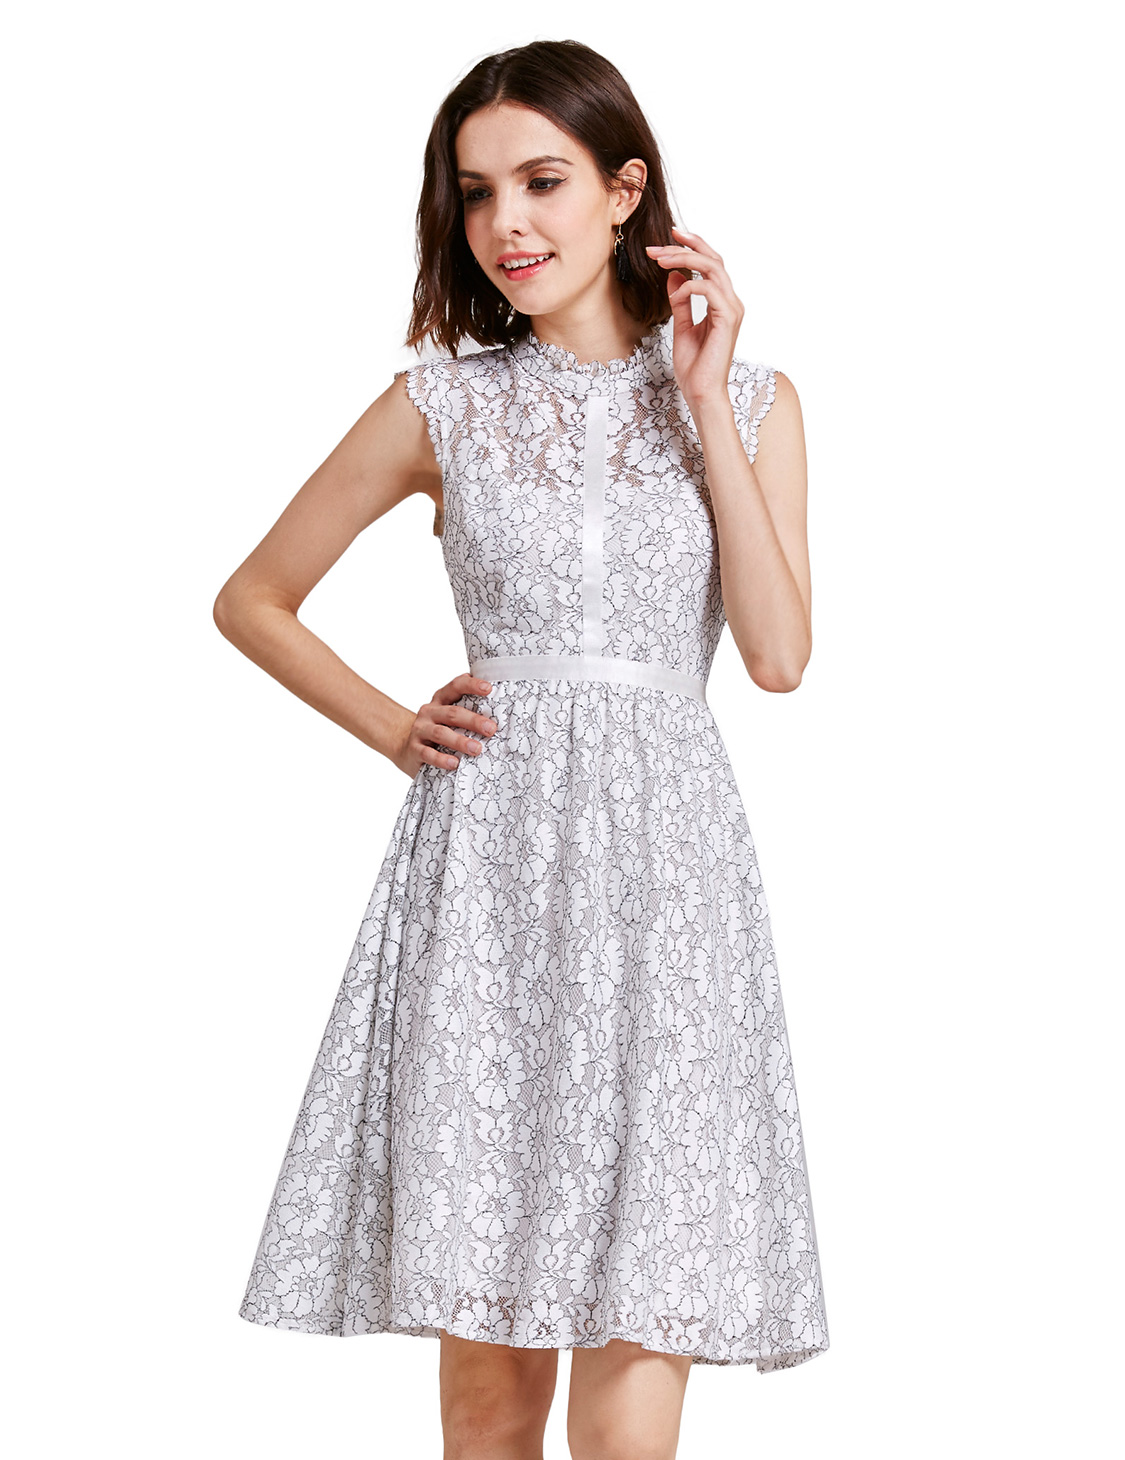 Alisa-Pan-Cocktail-Party-Dresses-White-Lace-Short-Summer-Evening-Dress-05867